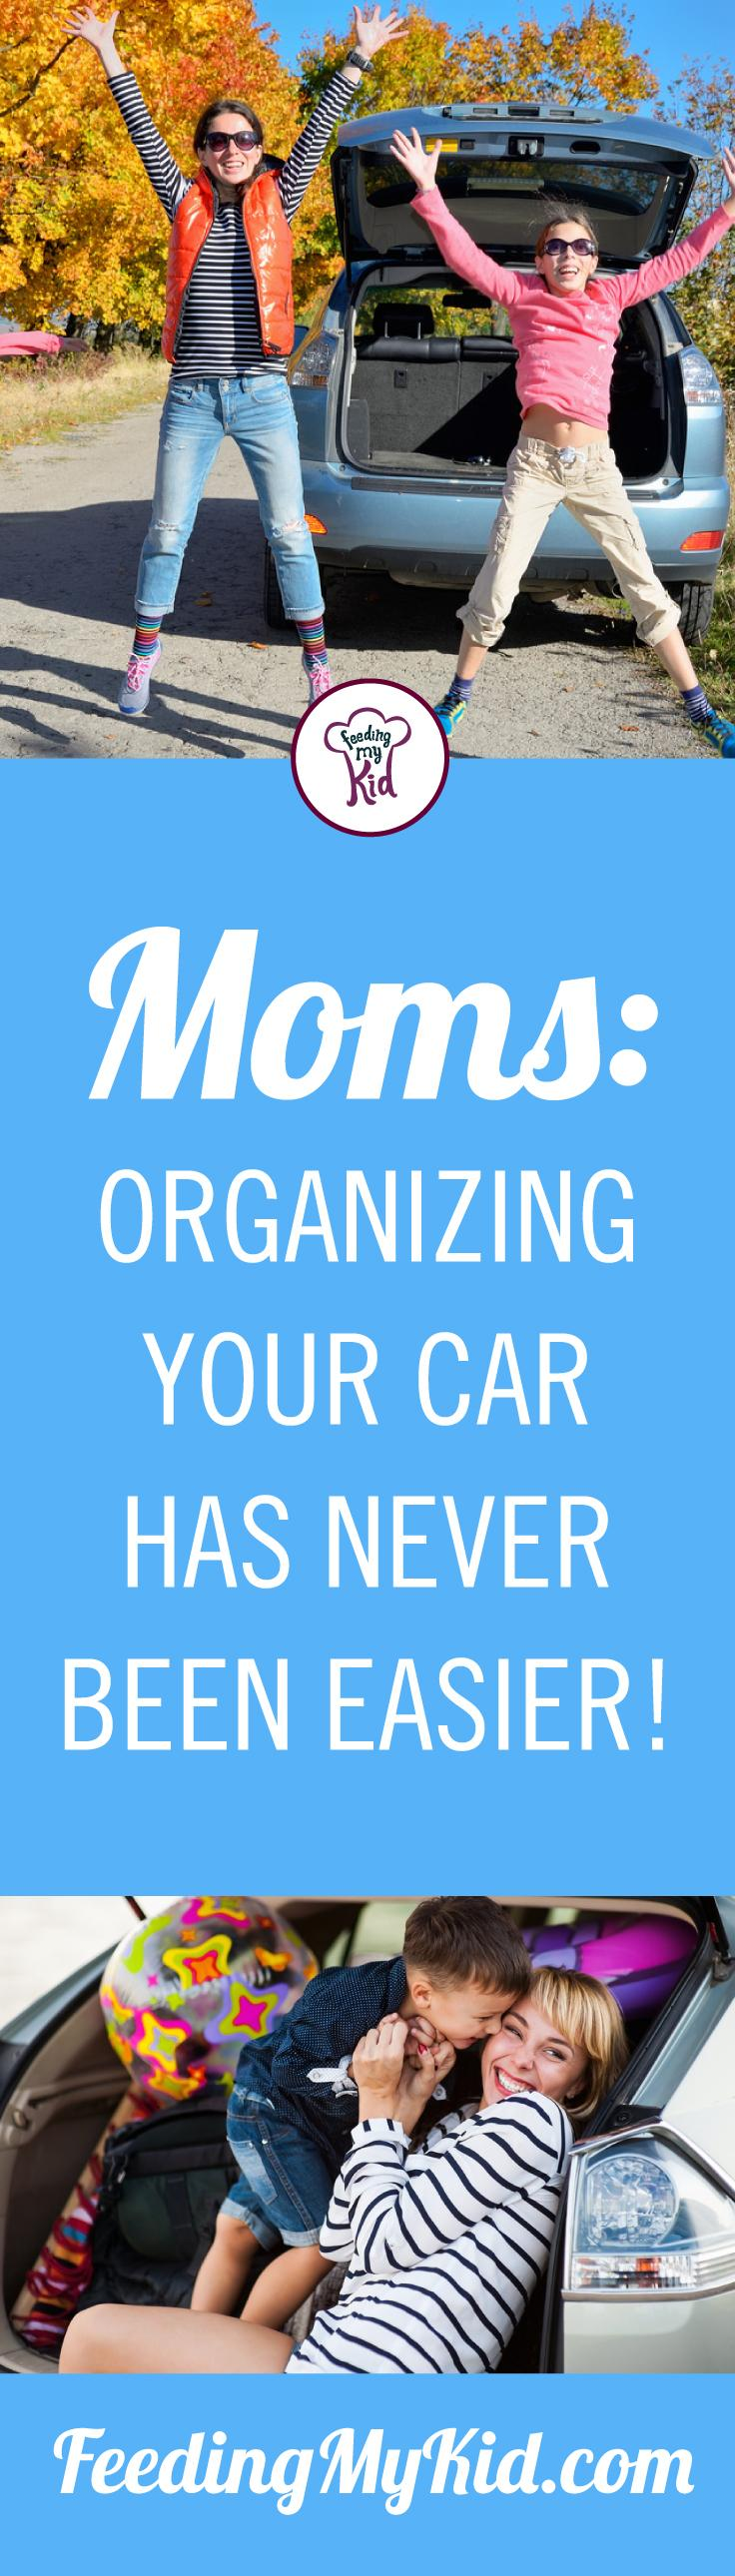 Car organization can seem impossible, but you can totally do it! Check out this video for Elle's car organization tips and tricks.